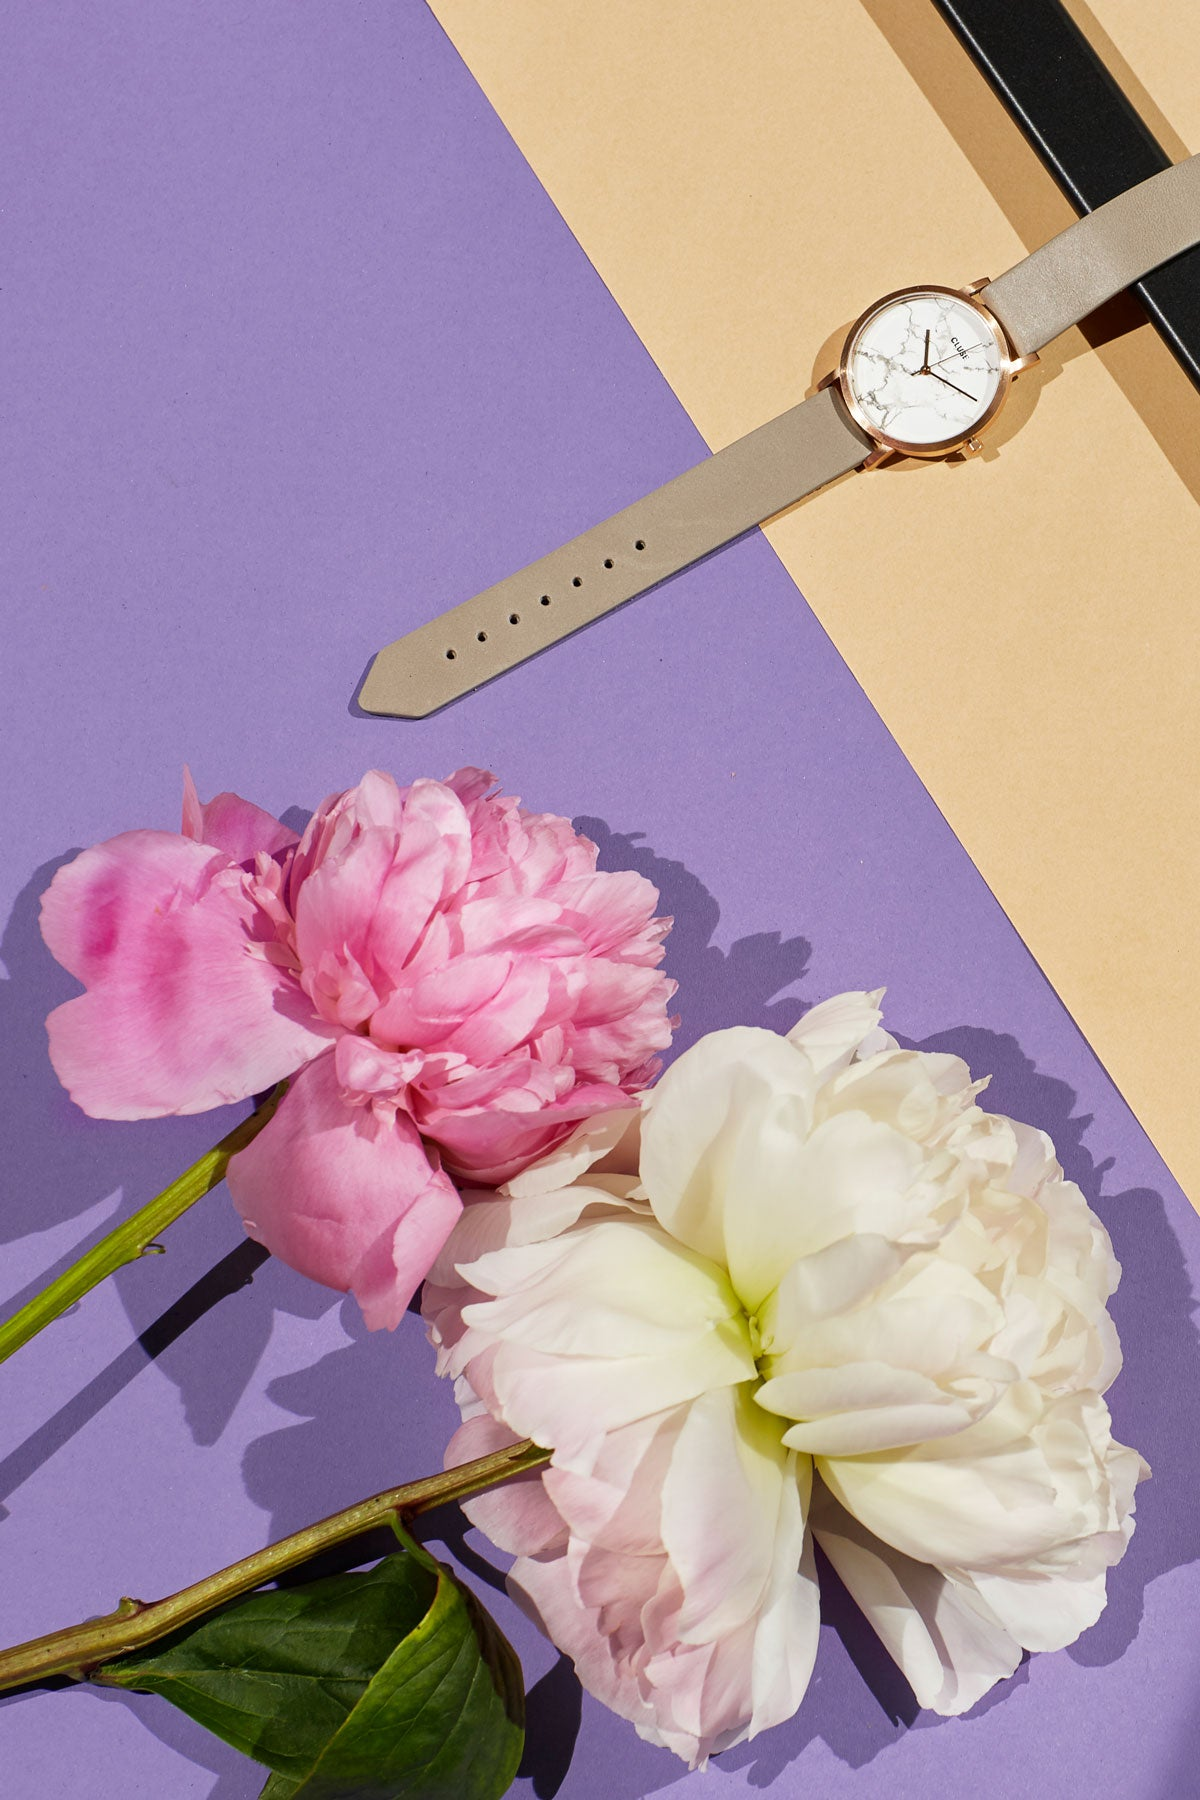 White and pink peony on purple background with watch